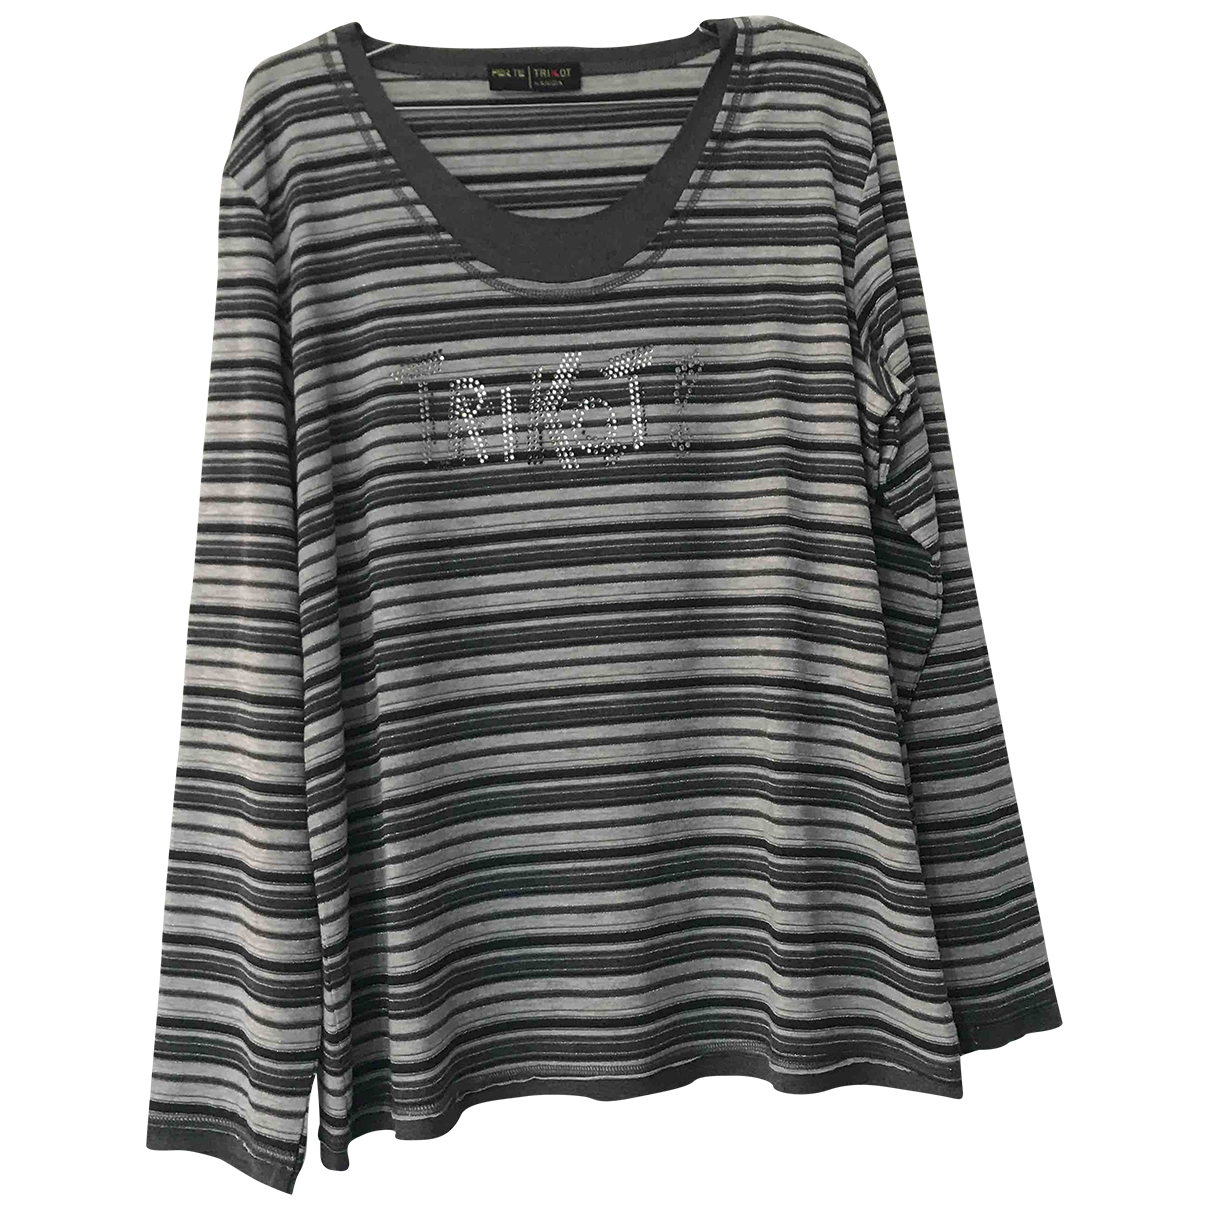 Krizia \N Grey  top for Women L International